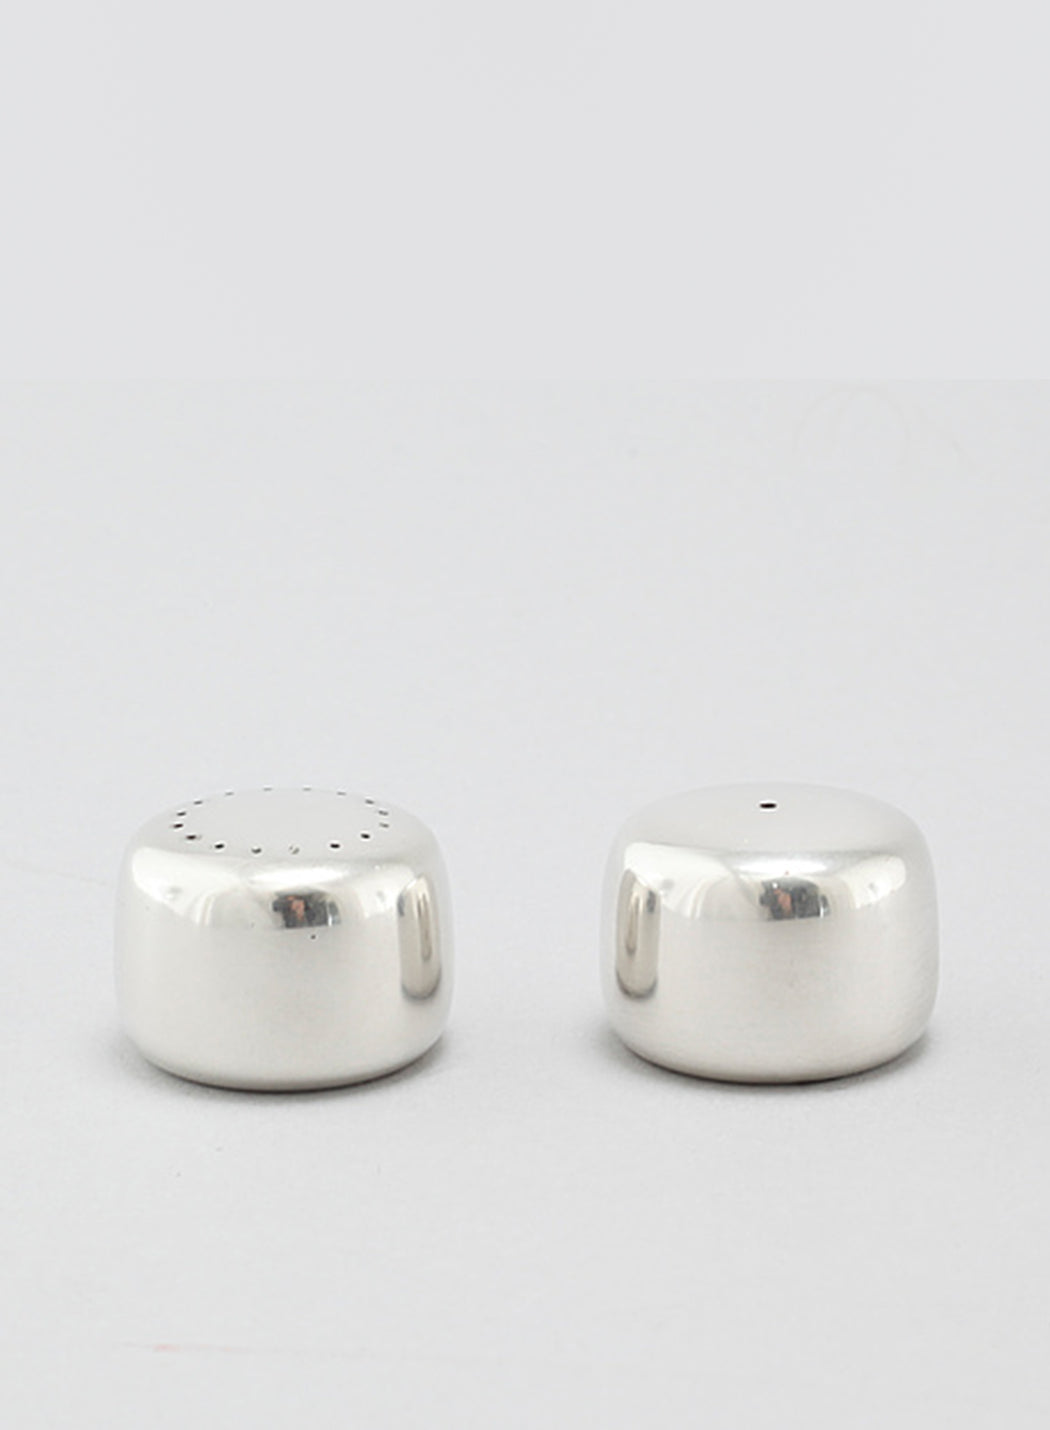 Vintage Georg Jensen Minimalist Salt + Pepper Shakers by Henning Koppel